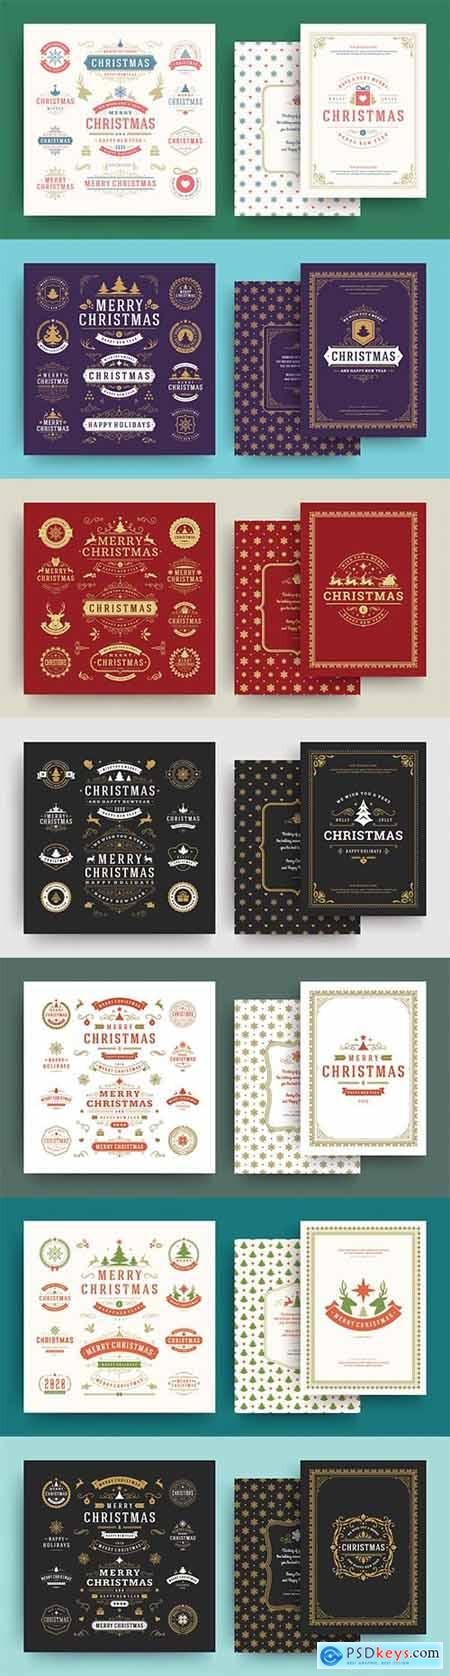 Christmas labels and badges vector design elements set with